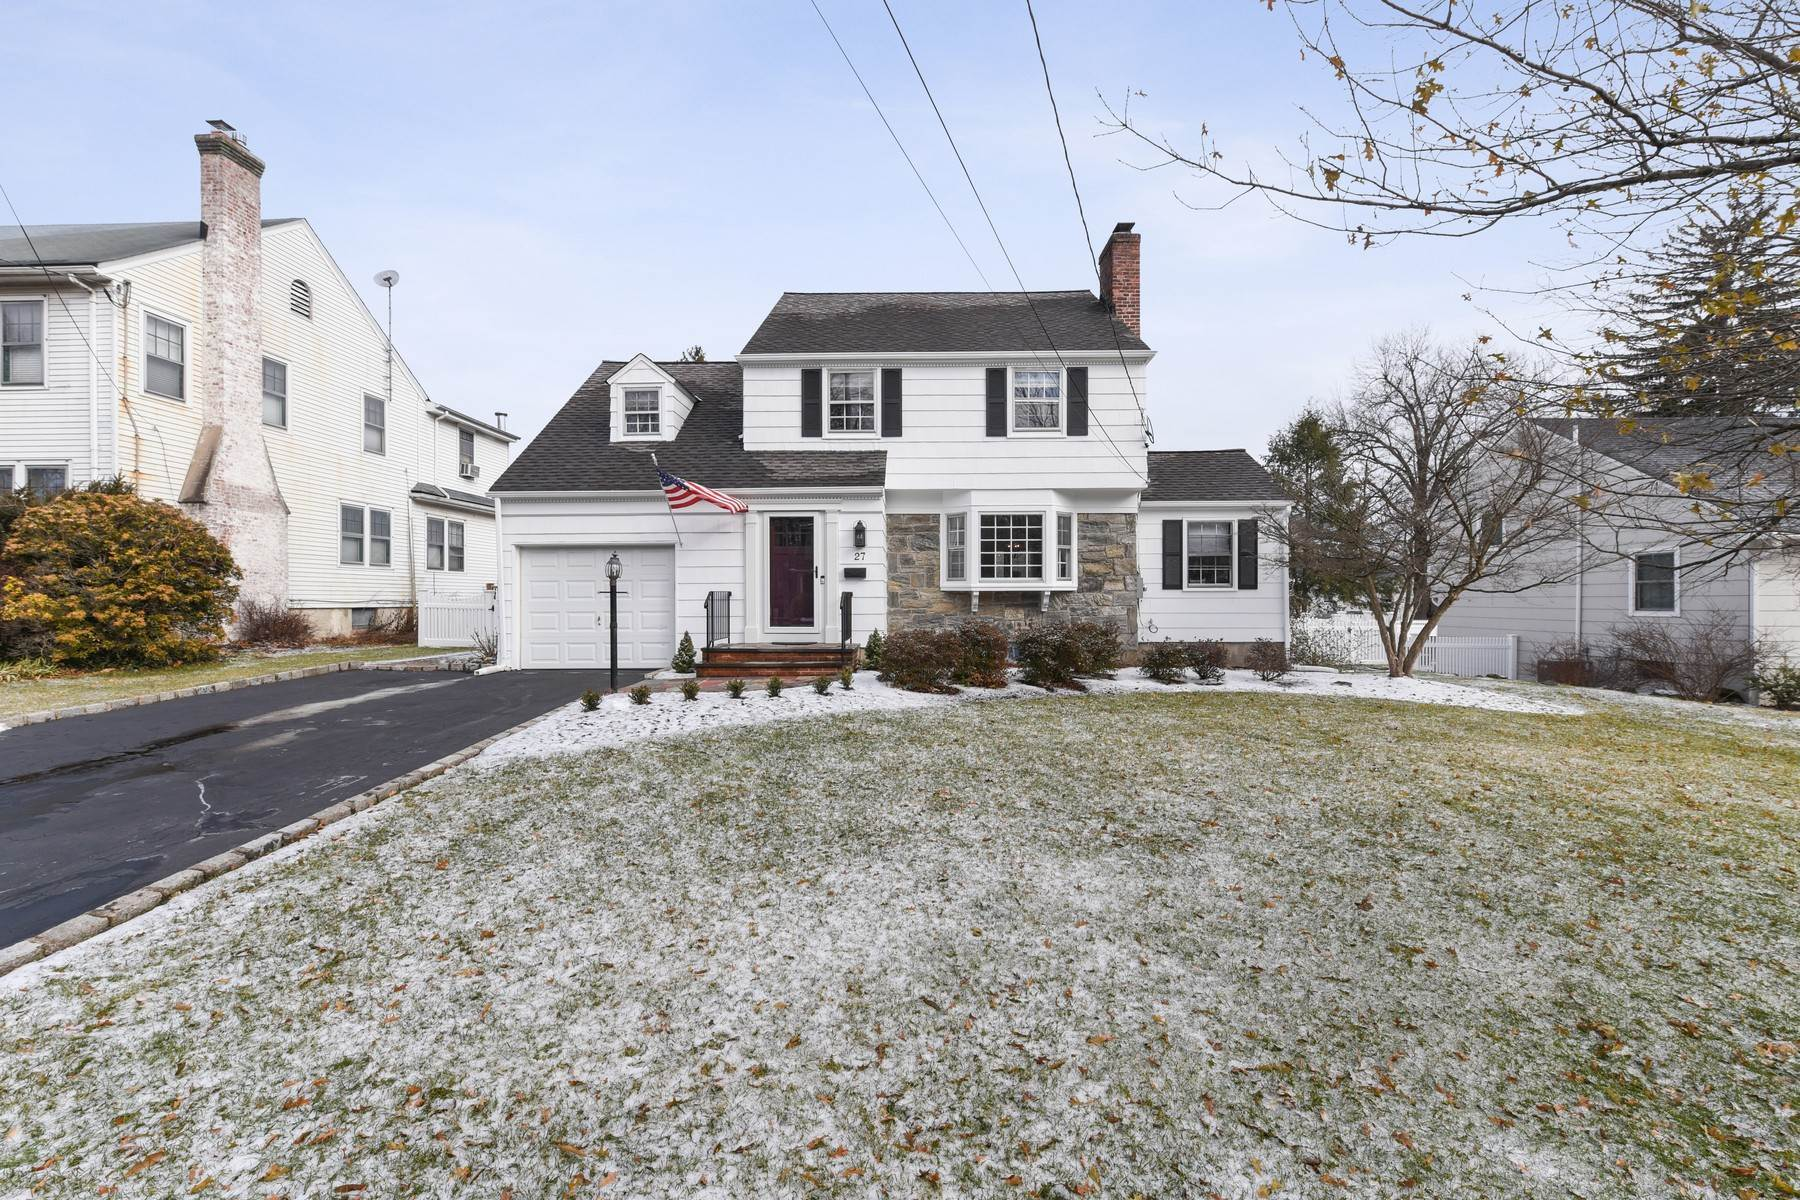 Single Family Homes for Sale at Wonderfully Updated Colonial on a Quiet Tree Lined Street 27 Beech Avenue Madison, New Jersey 07940 United States